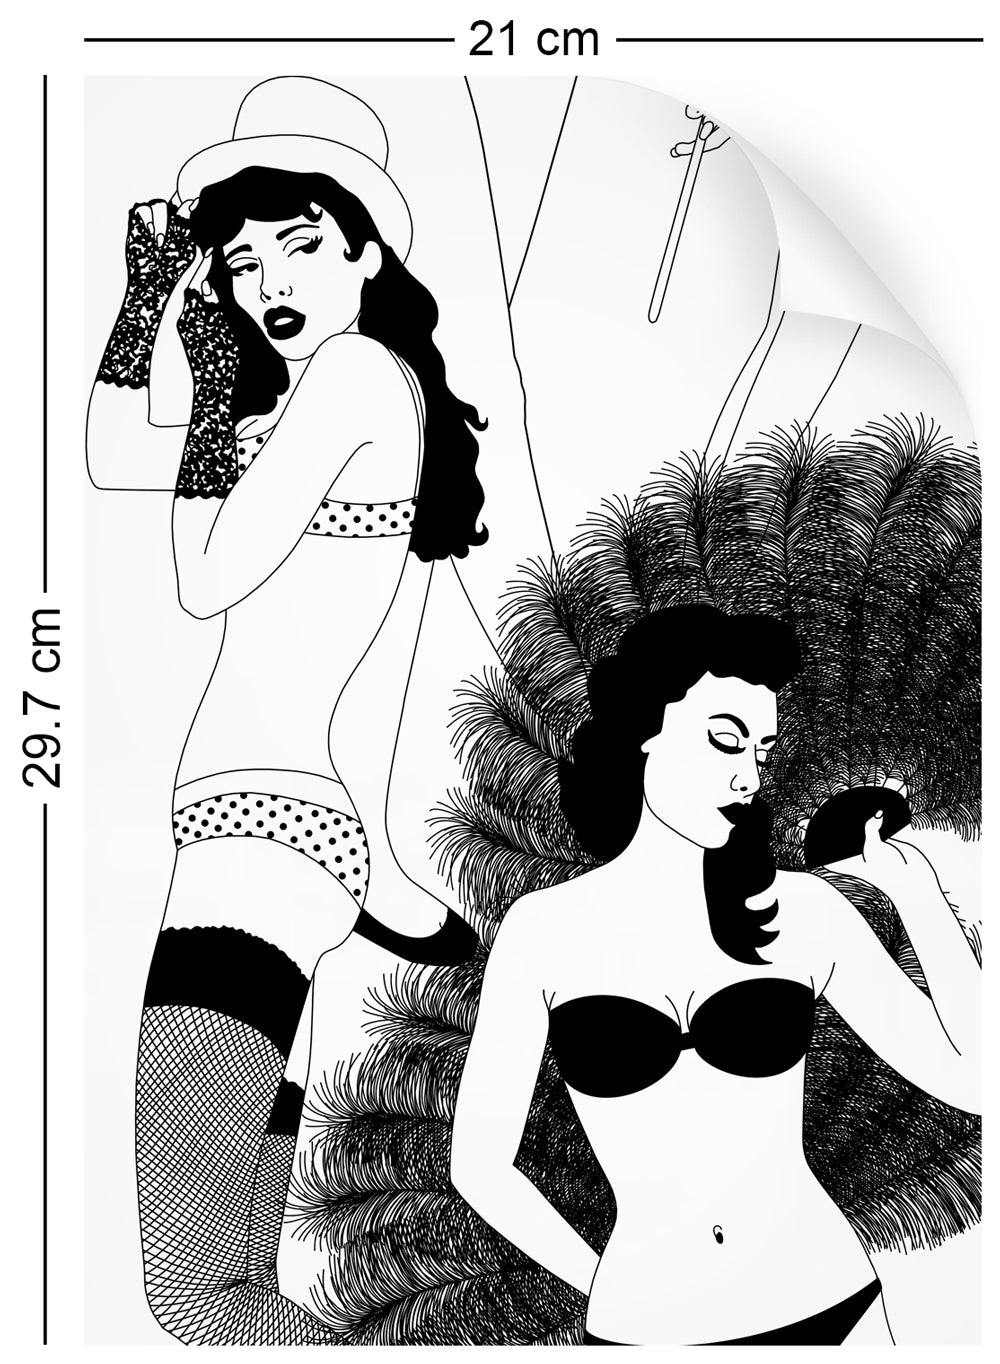 a4 wallpaper sample with burlesque dancer design in monochrome